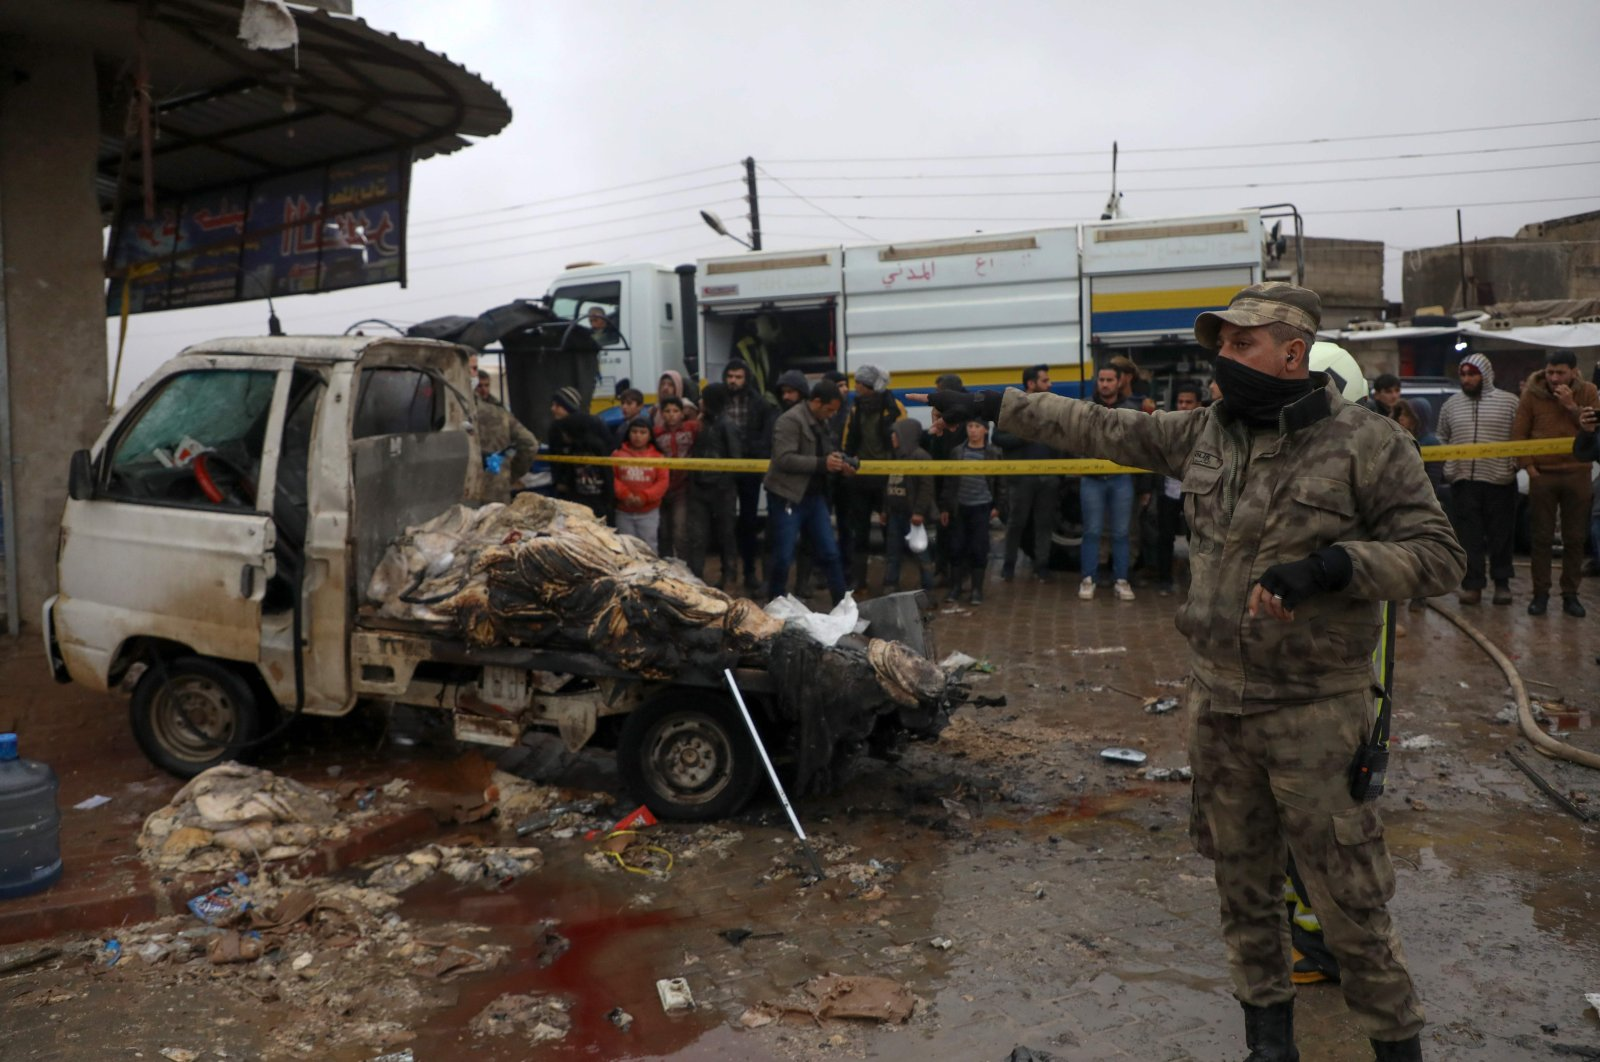 A Syrian opposition member gestures while standing in a pool of blood and water next to a damaged bread-delivery truck that exploded, killing at least one person and injuring at least six others, at the entrance of a market in the town of Saju near Azaz in the opposition-controlled northern countryside of Syria's Aleppo province, on Jan. 17, 2021. (AFP Photo)